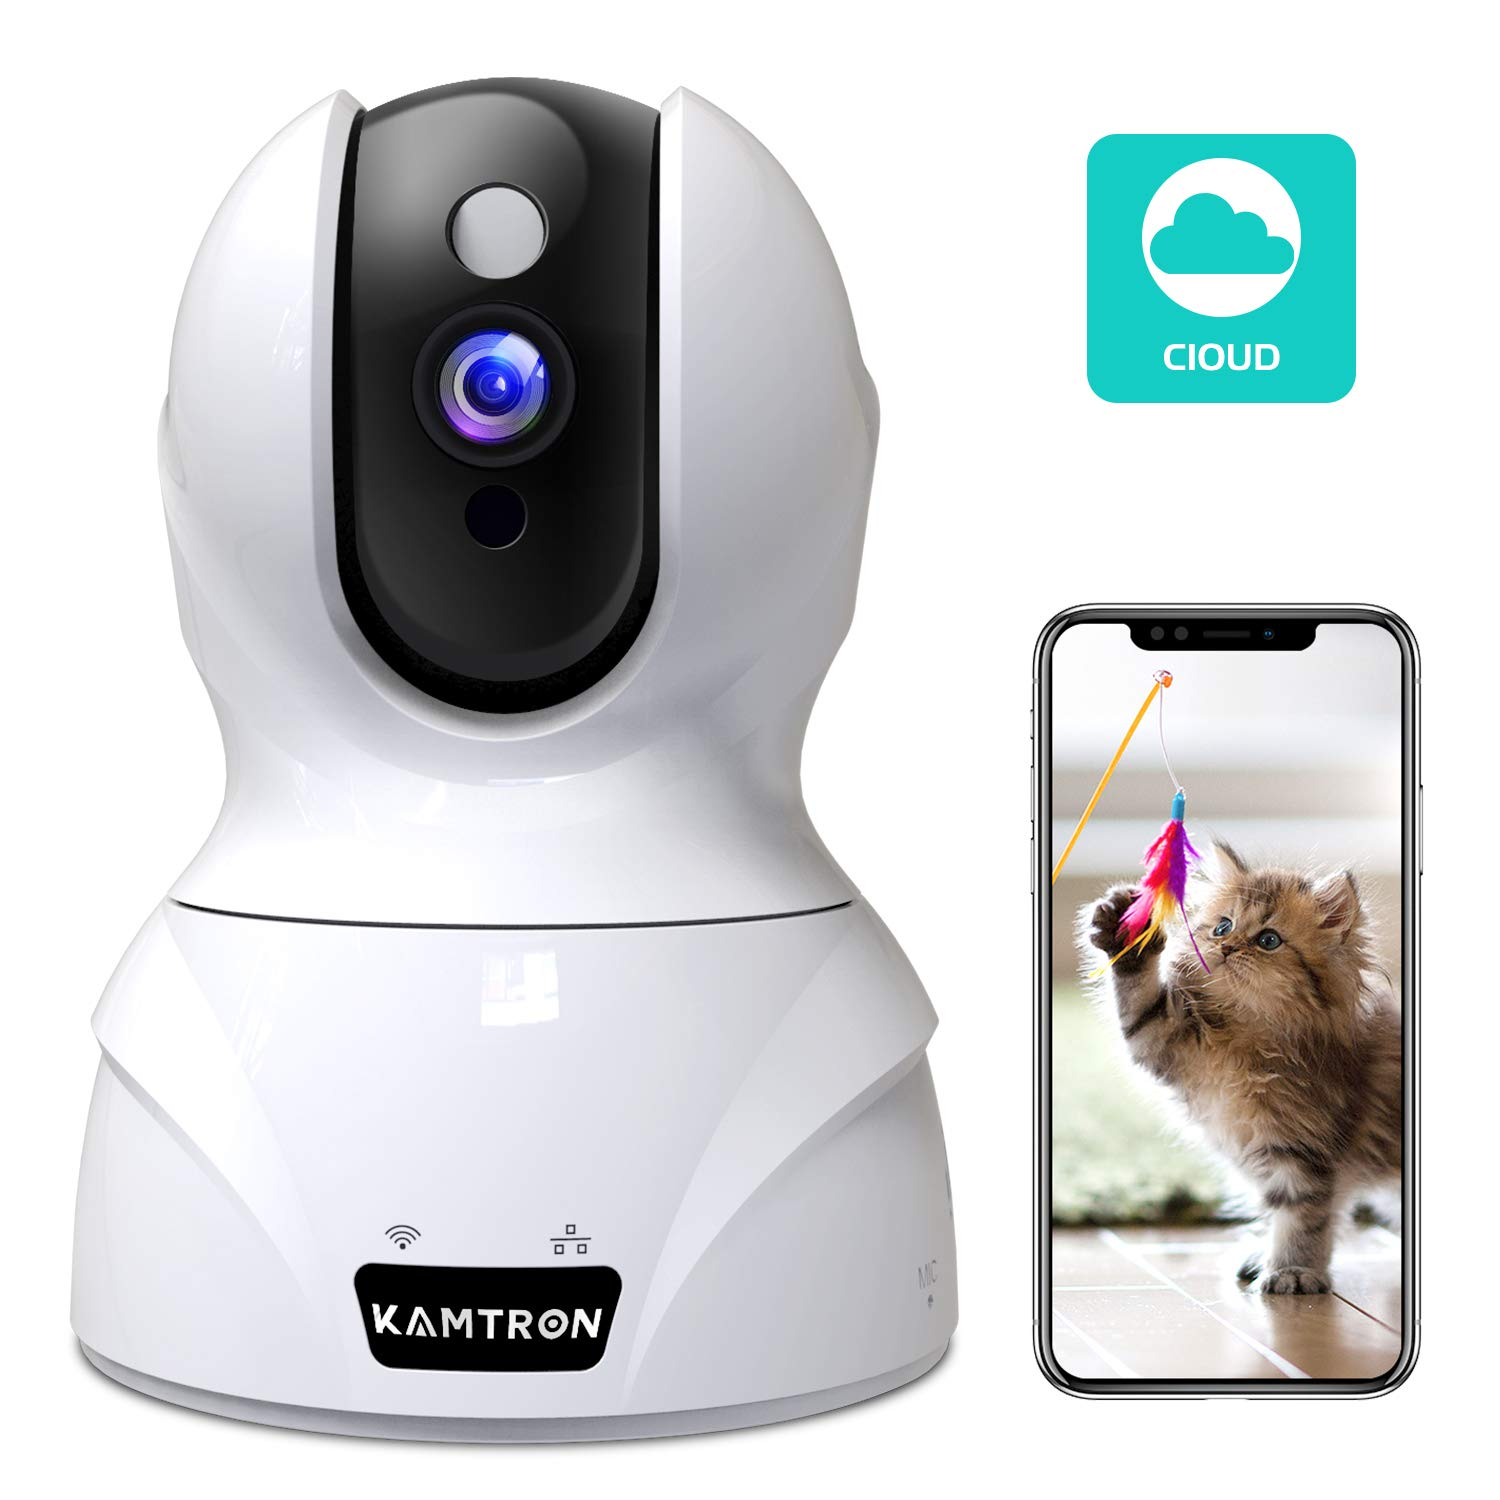 Wireless Security Camera,KAMTRON HD WiFi Security Surveillance IP Camera Home Monitor with Motion Detection Two-Way Audio Night Vision,White by KAMTRON